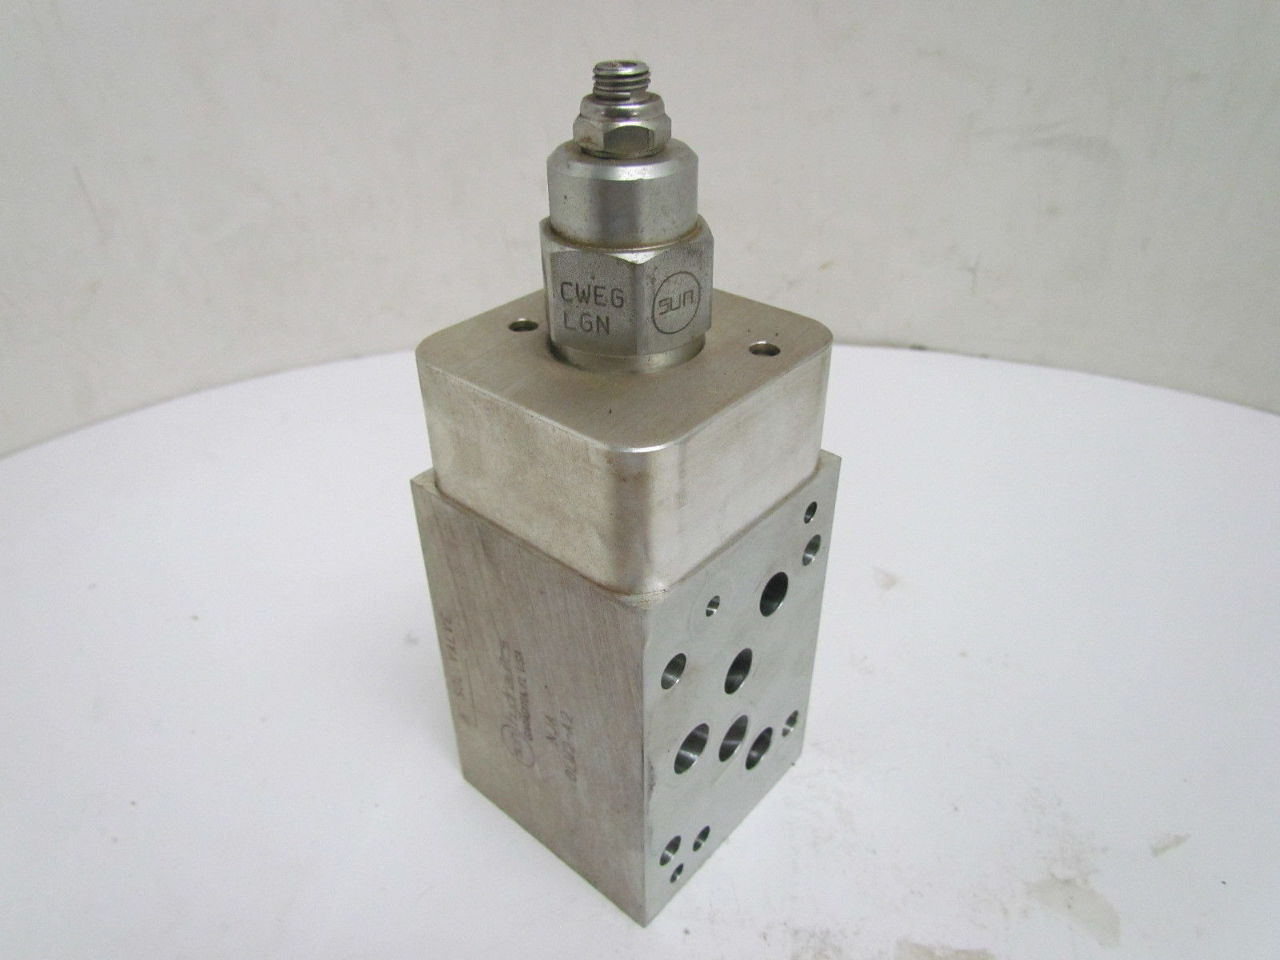 sun hydraulics Welcome to the sun hydraulics online order inquiry system this site provides an efficient method for you to review orders - right through your web browser.